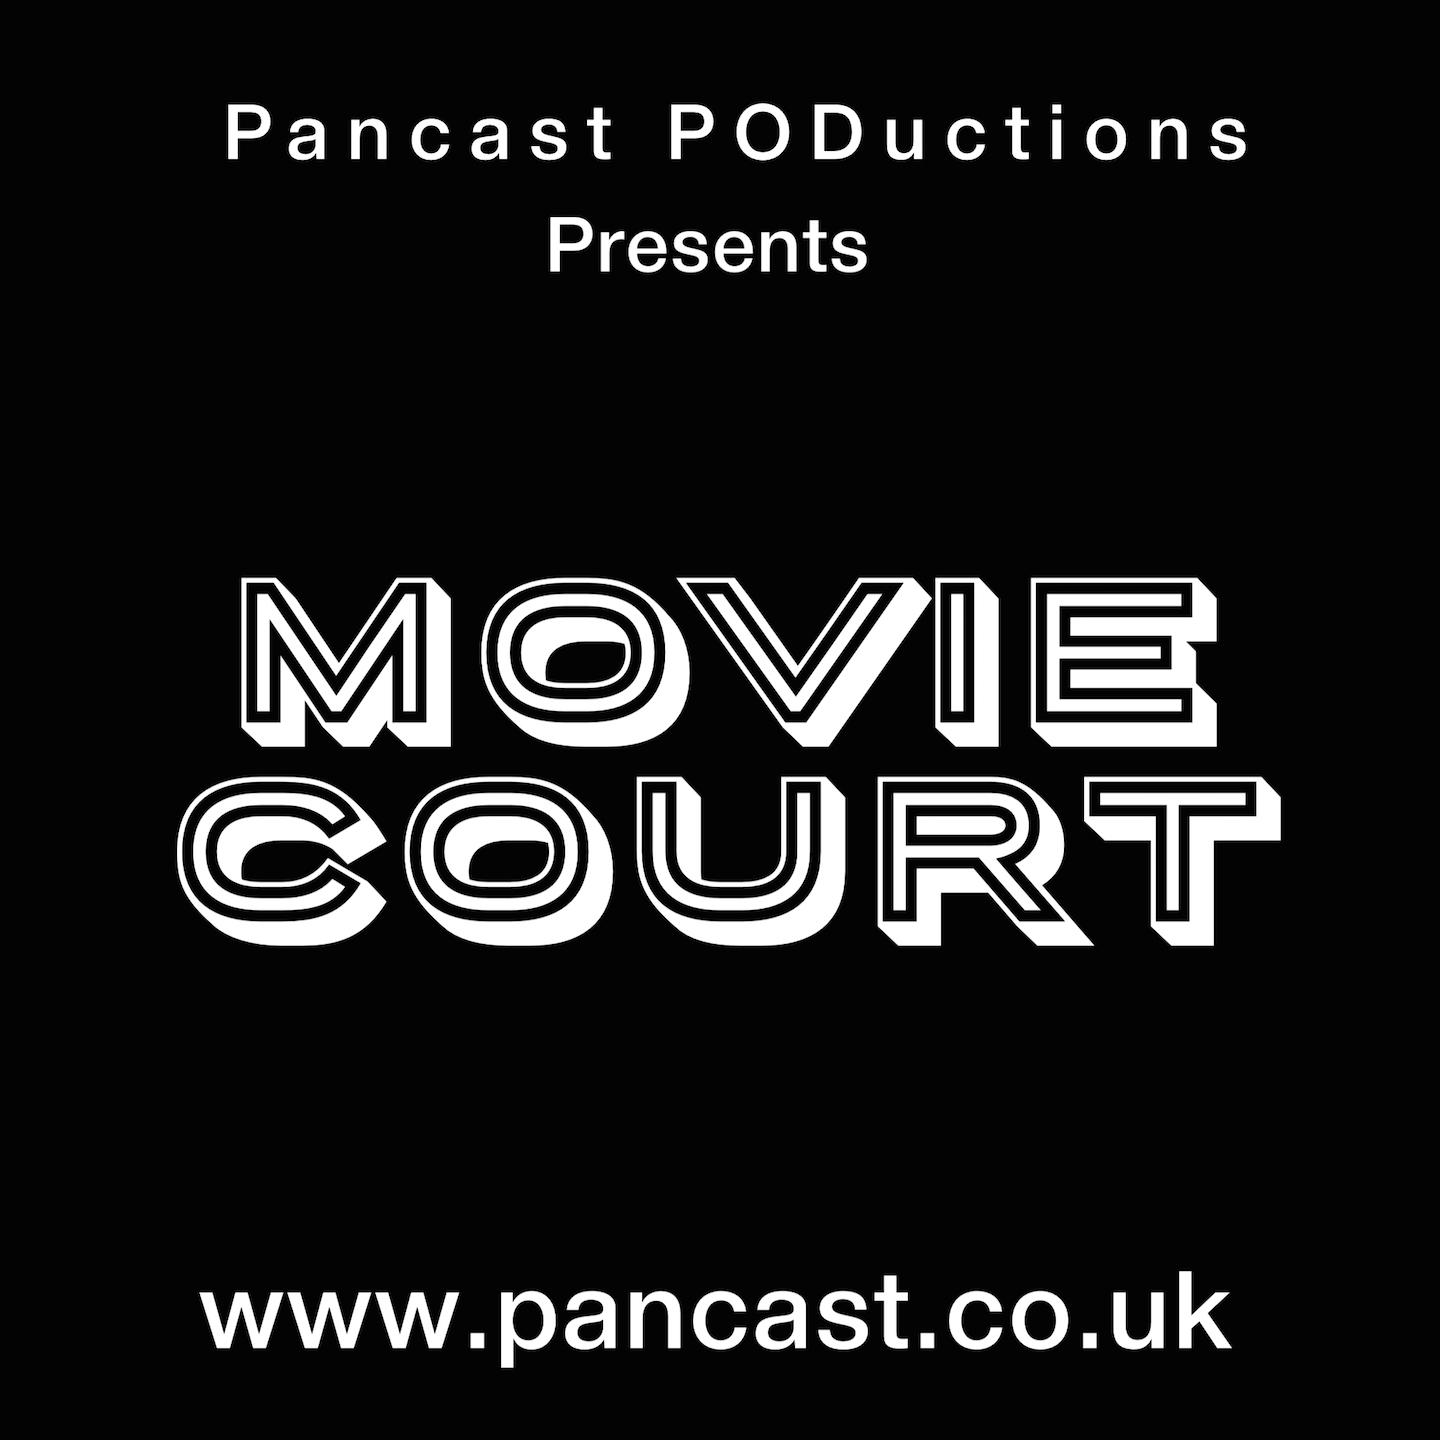 Pancast PODuctions Presents MOVIE COURT